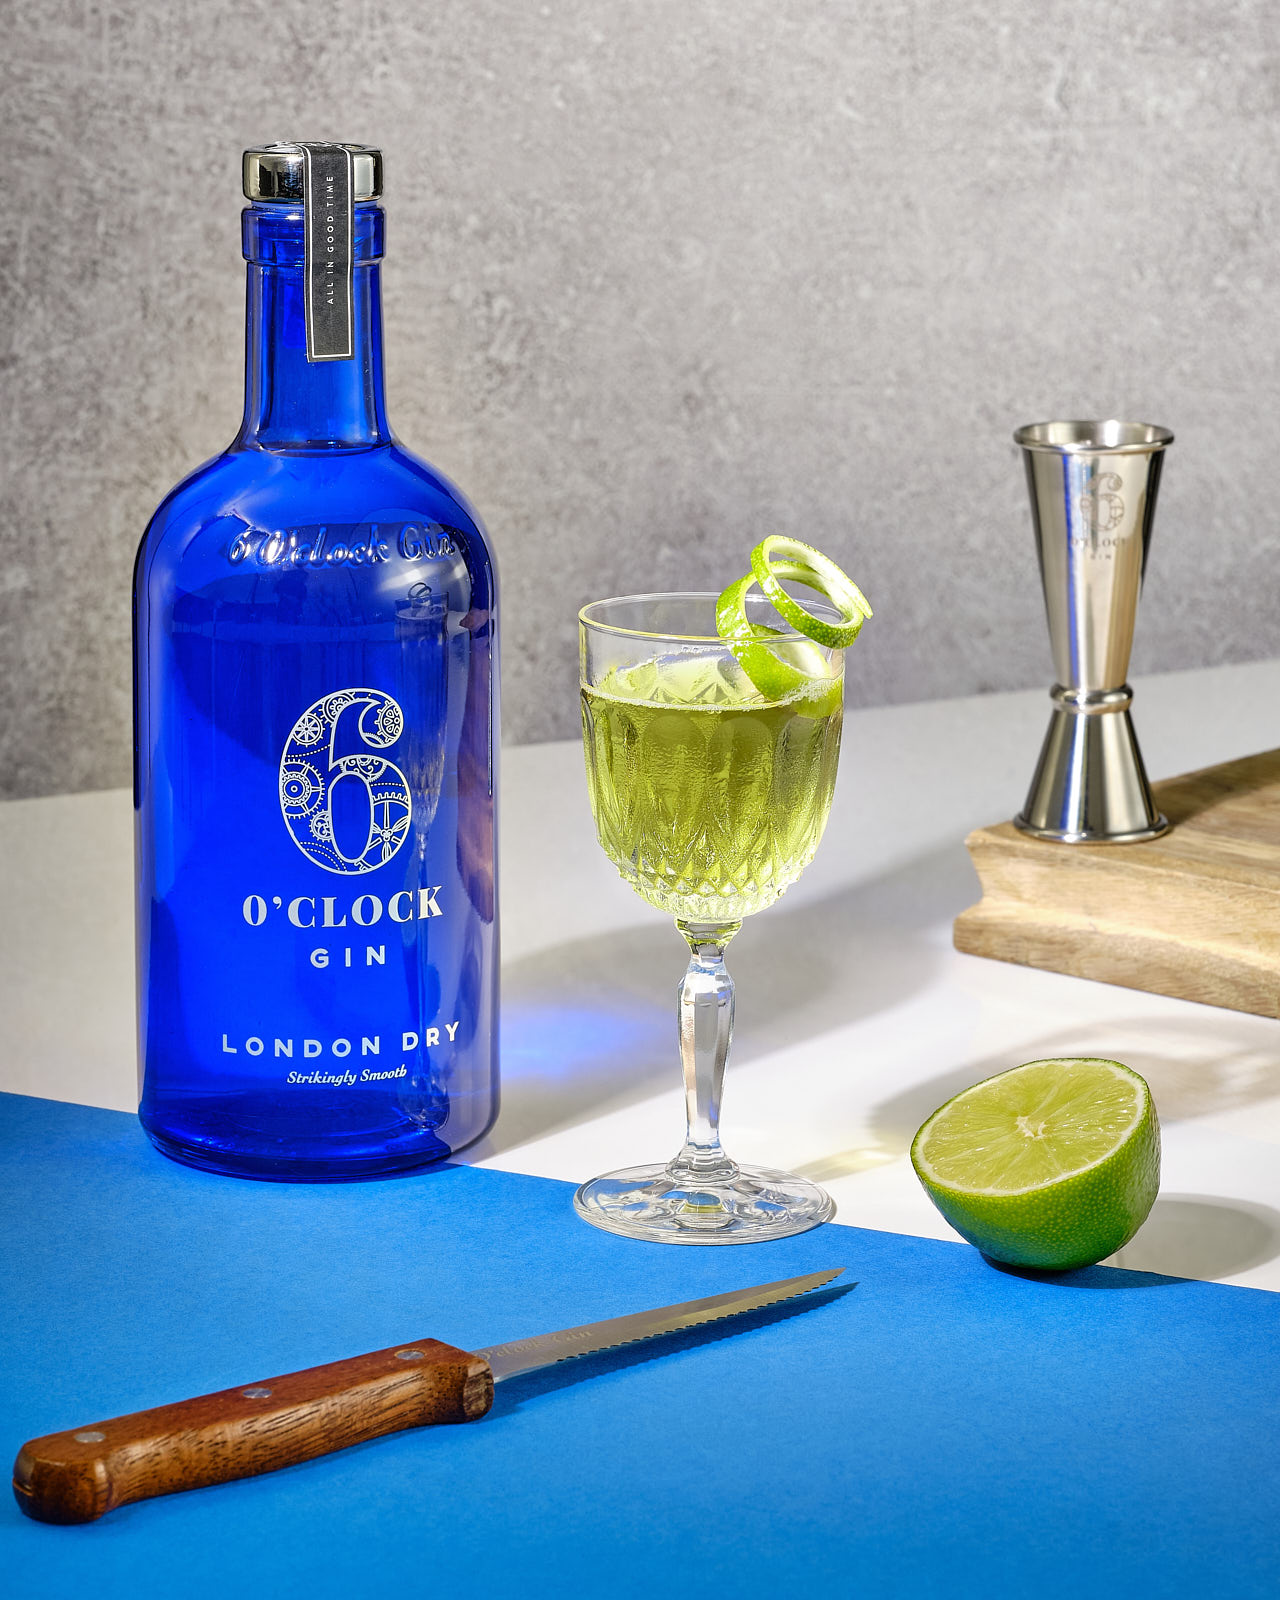 The Gimlet Cocktail - Made with 6 O'clock Gin London Dry.